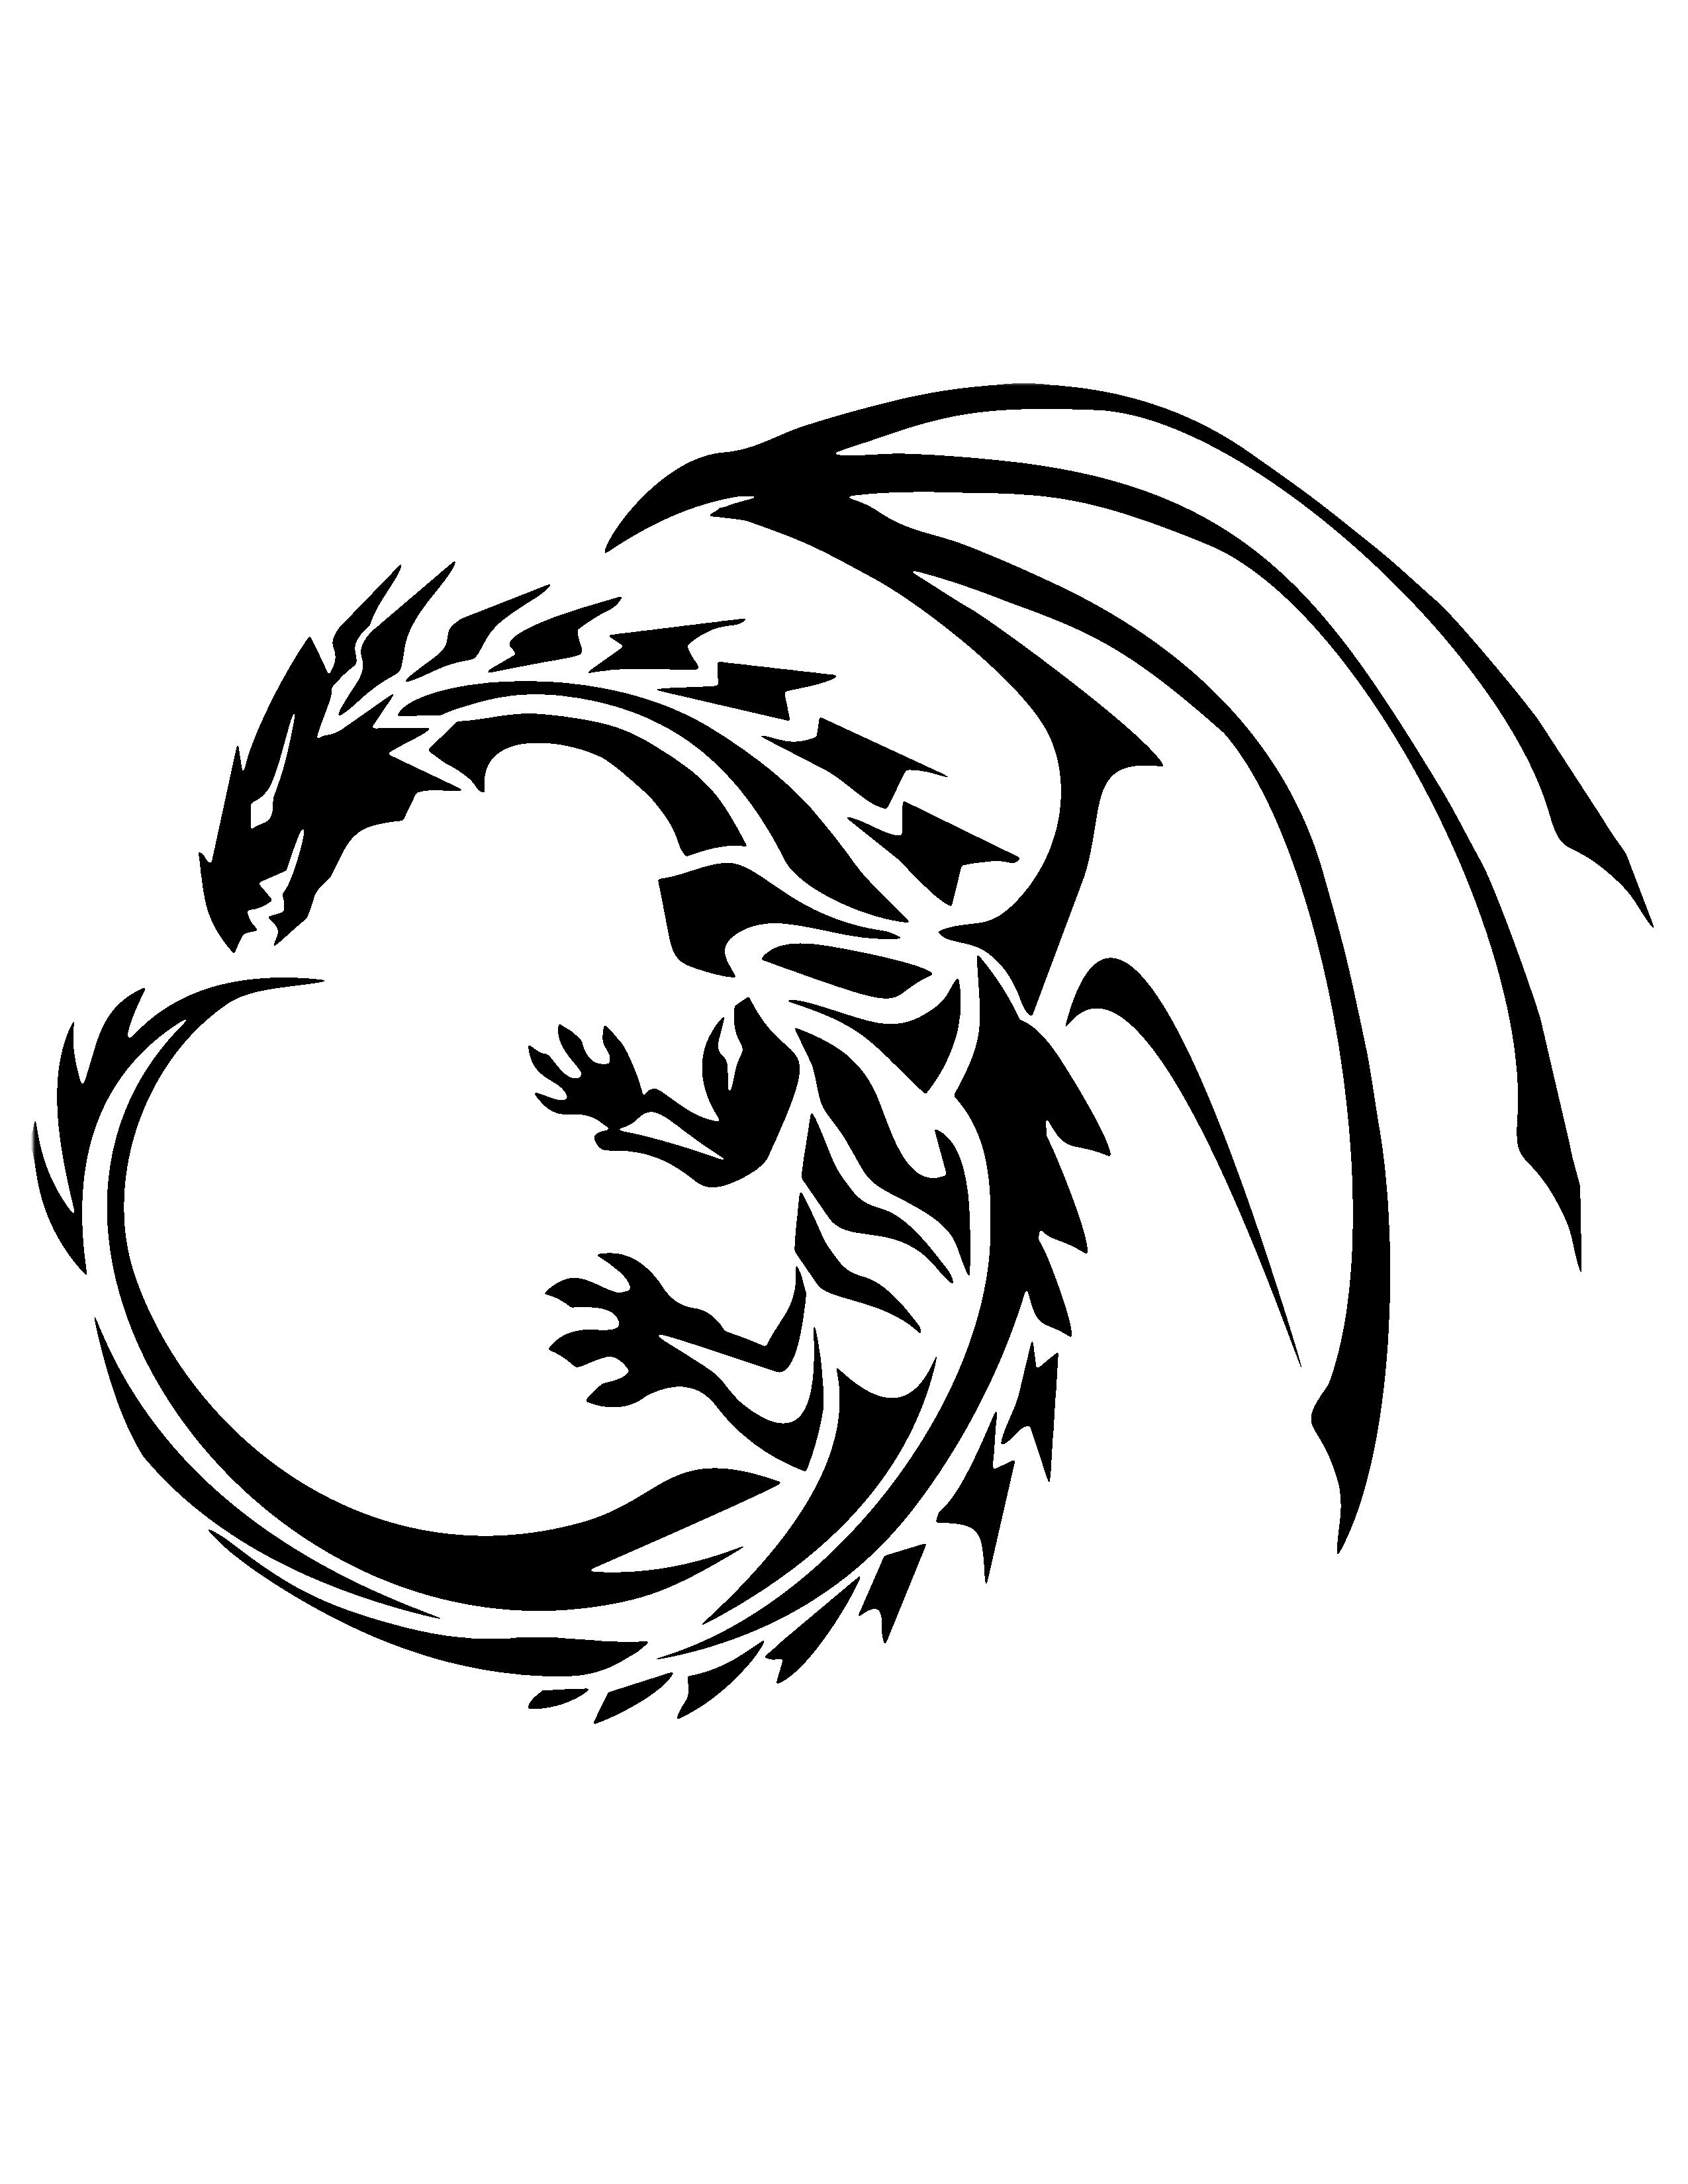 Dragon Stencil | Stencils | Tribal Dragon Tattoos, Tribal Tattoos - Free Printable Dragon Stencils